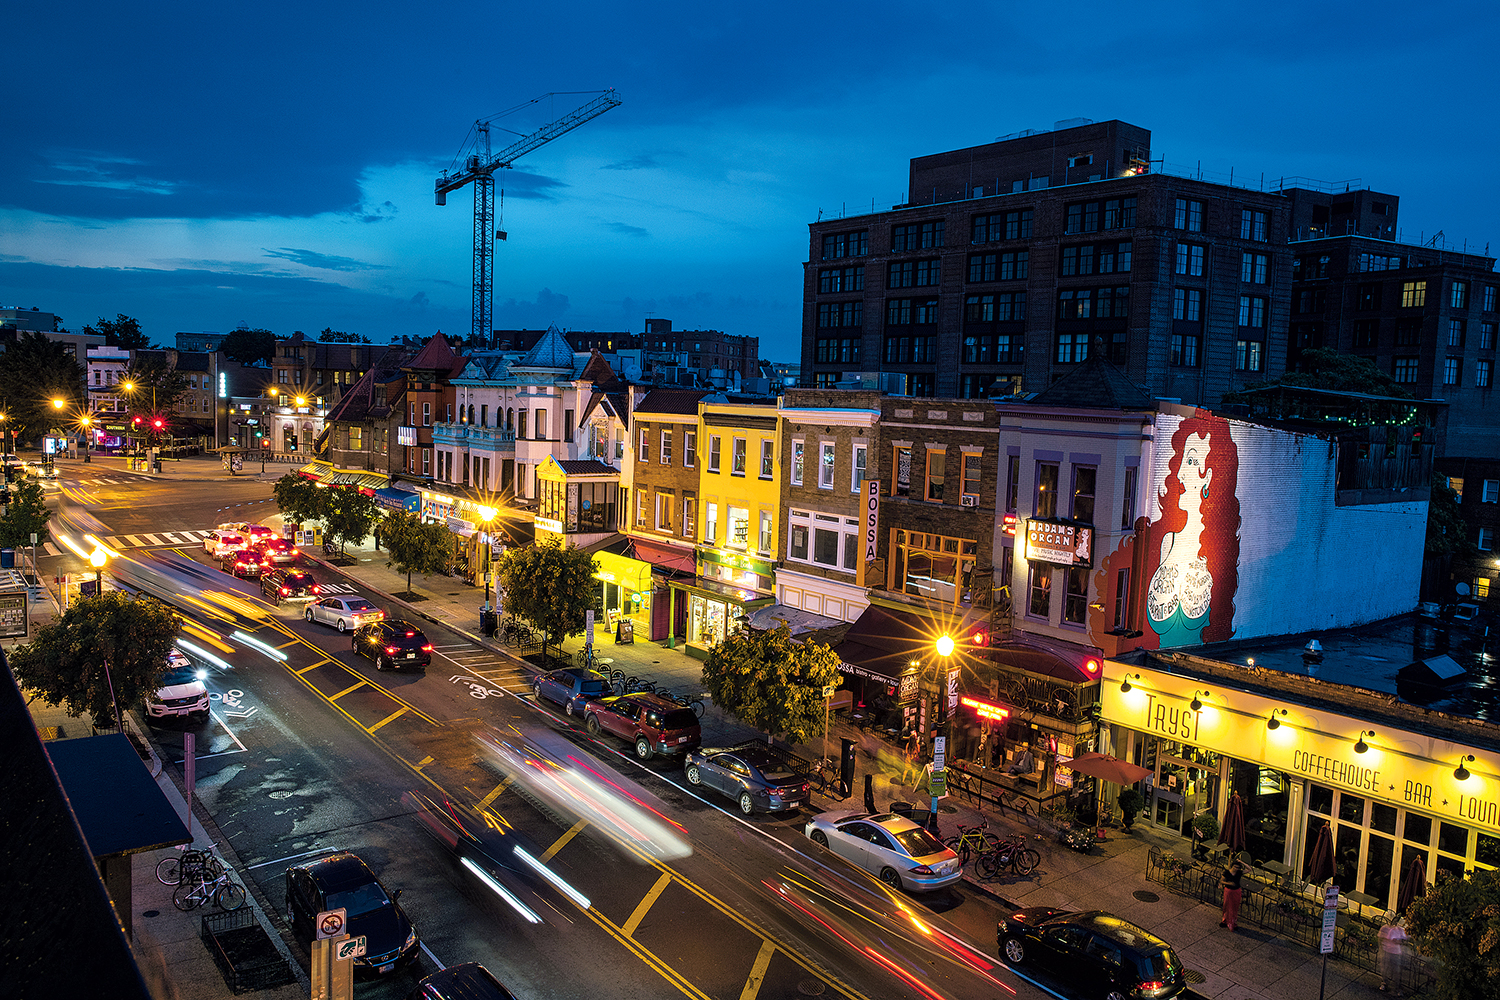 Evening in Adams Morgan. Photograph by Evelyn Hockstein/Getty Images.